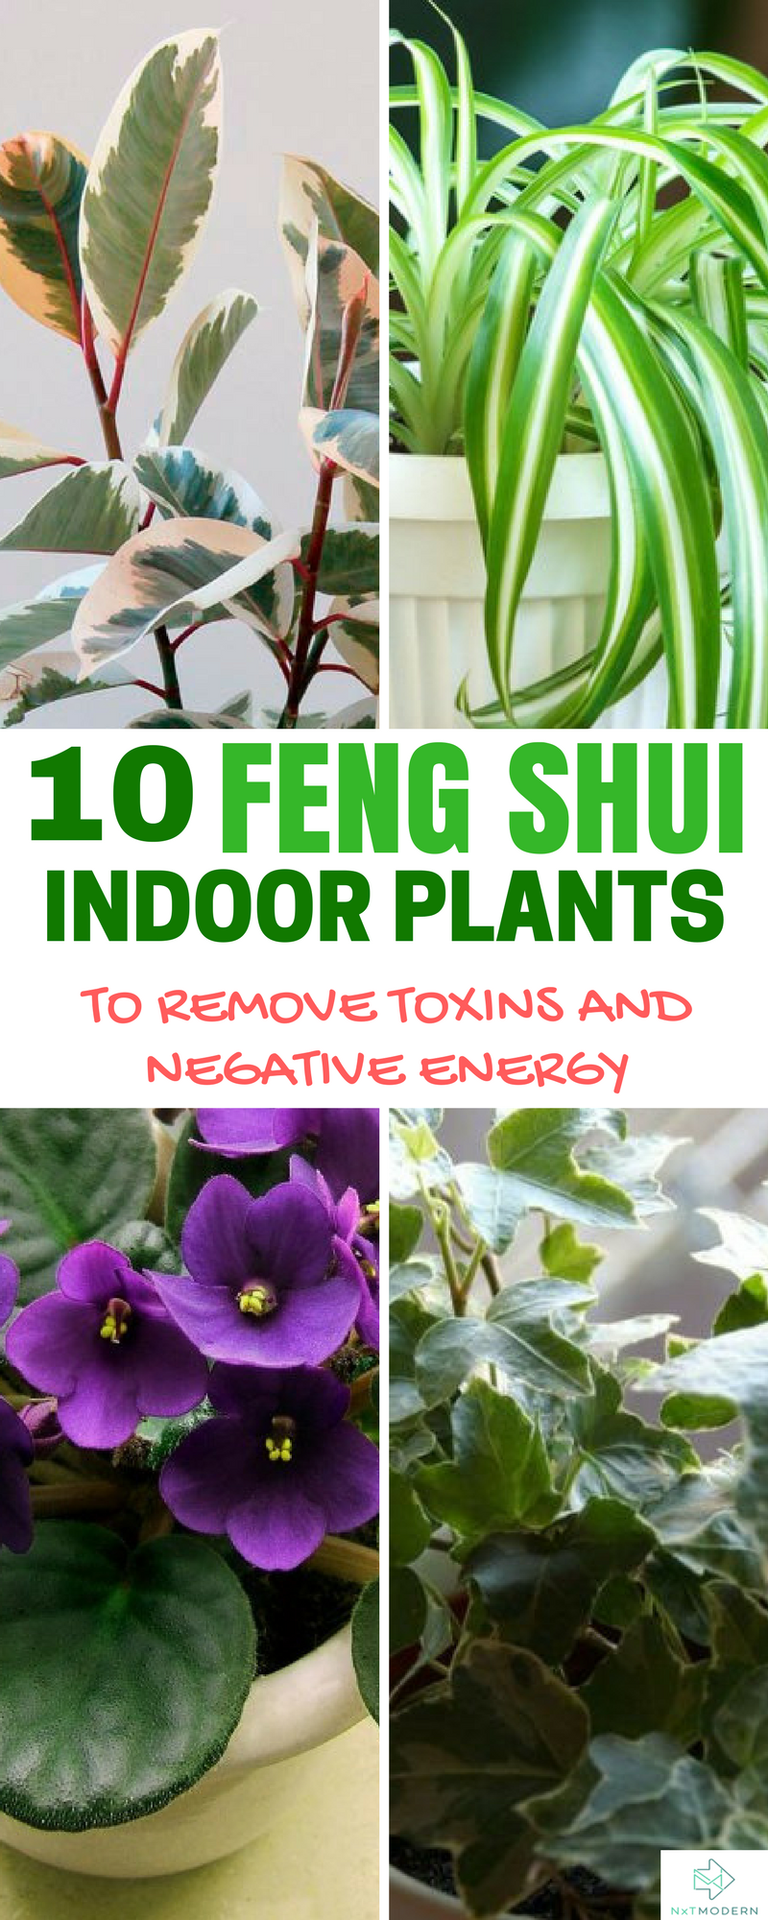 10 Feng Shui Indoor Plants To Spruce Up Your Interior Decor Feng